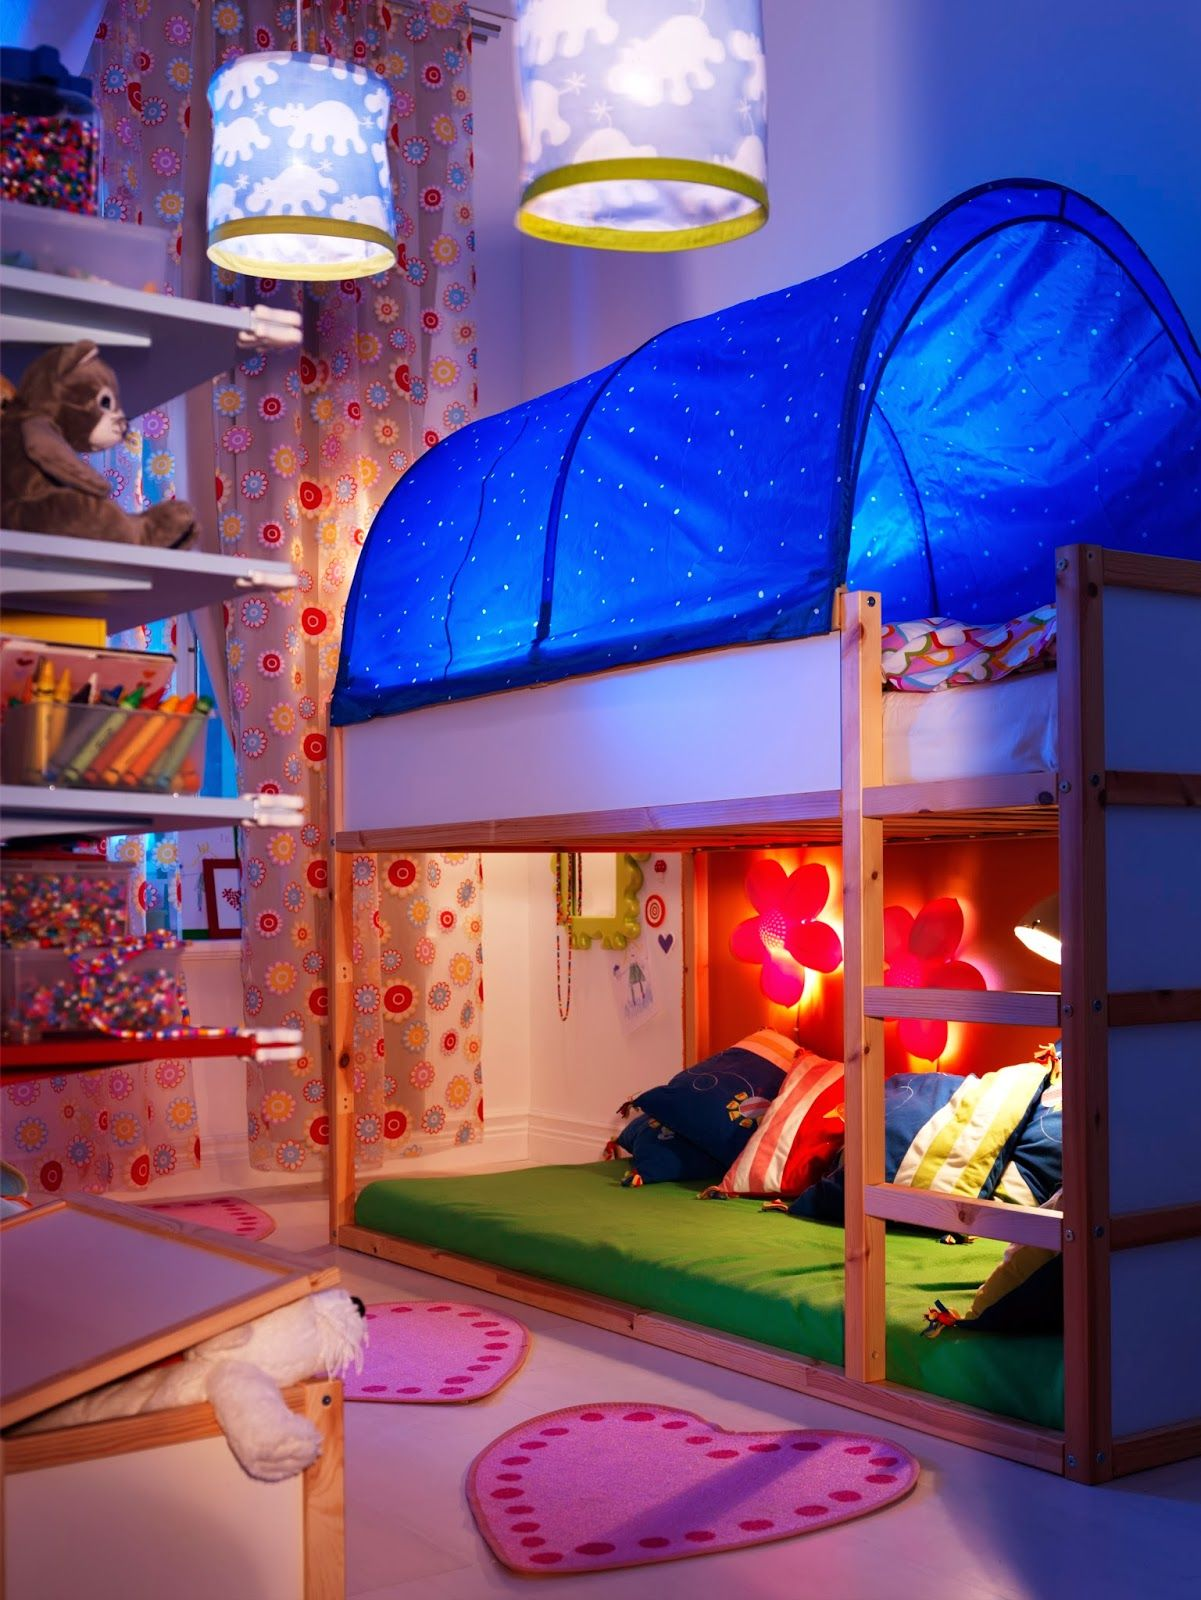 ikea kura bunk bed// a few weeks ago august came into the kitchen and told me he was big enough for a bunk bed. ) wanting to get him this bed + tent ... & IKEA KURA reversible bed u0026 tent | Kids Bedroom Ideas | Pinterest ...